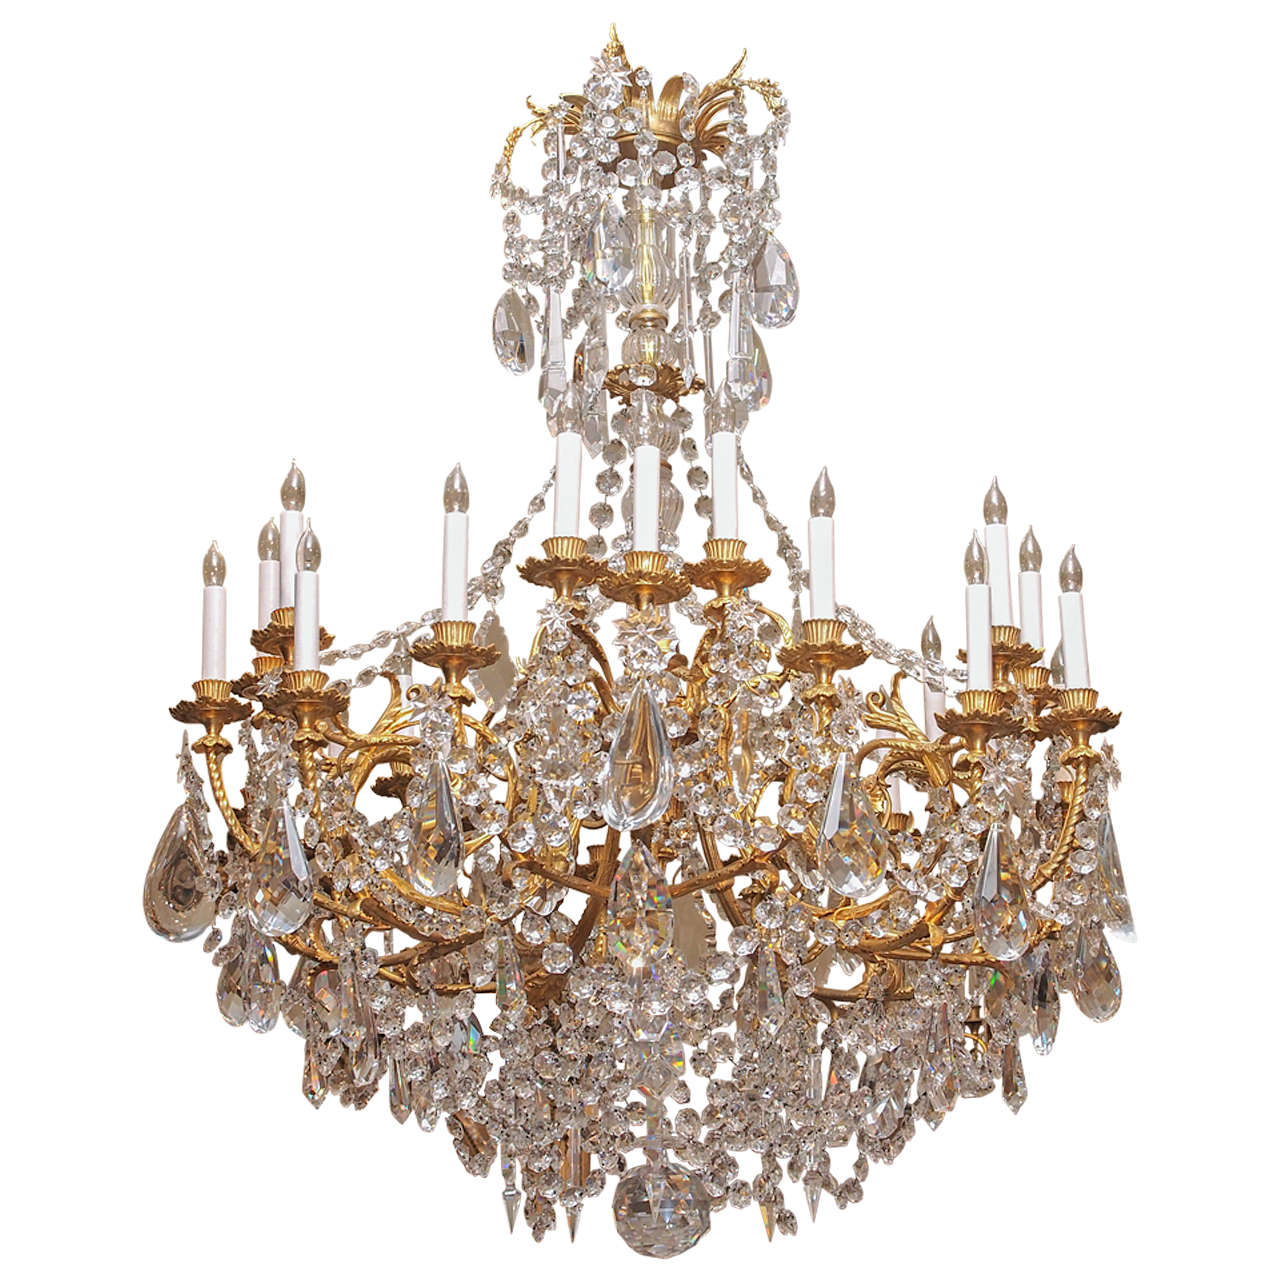 Antique French Baccarat and Bronze D'ore Louis 16th Crystal Chandelier  circa 1890s - Antique French Baccarat And Bronze D'ore Louis 16th Crystal